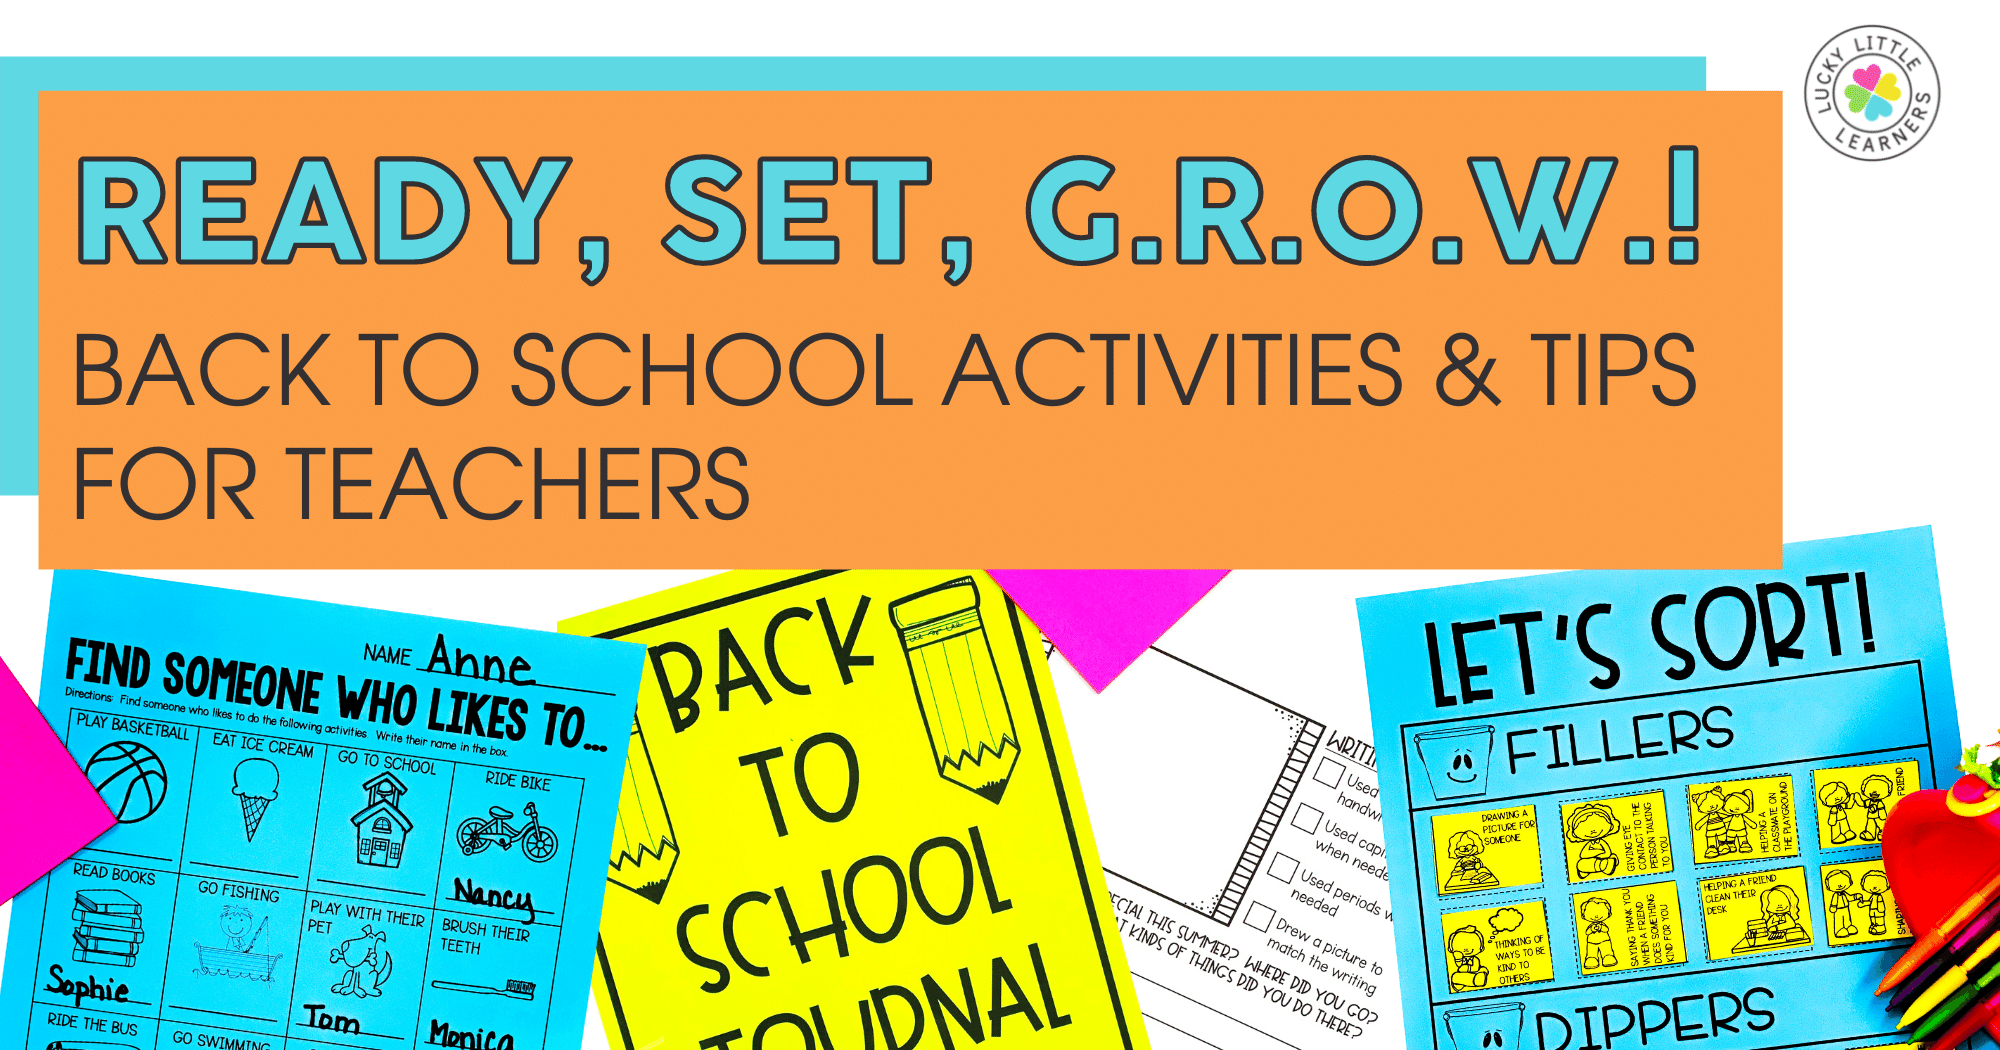 Ready, Set, G.R.O.W.! Back to School Activities & Tips for Teachers